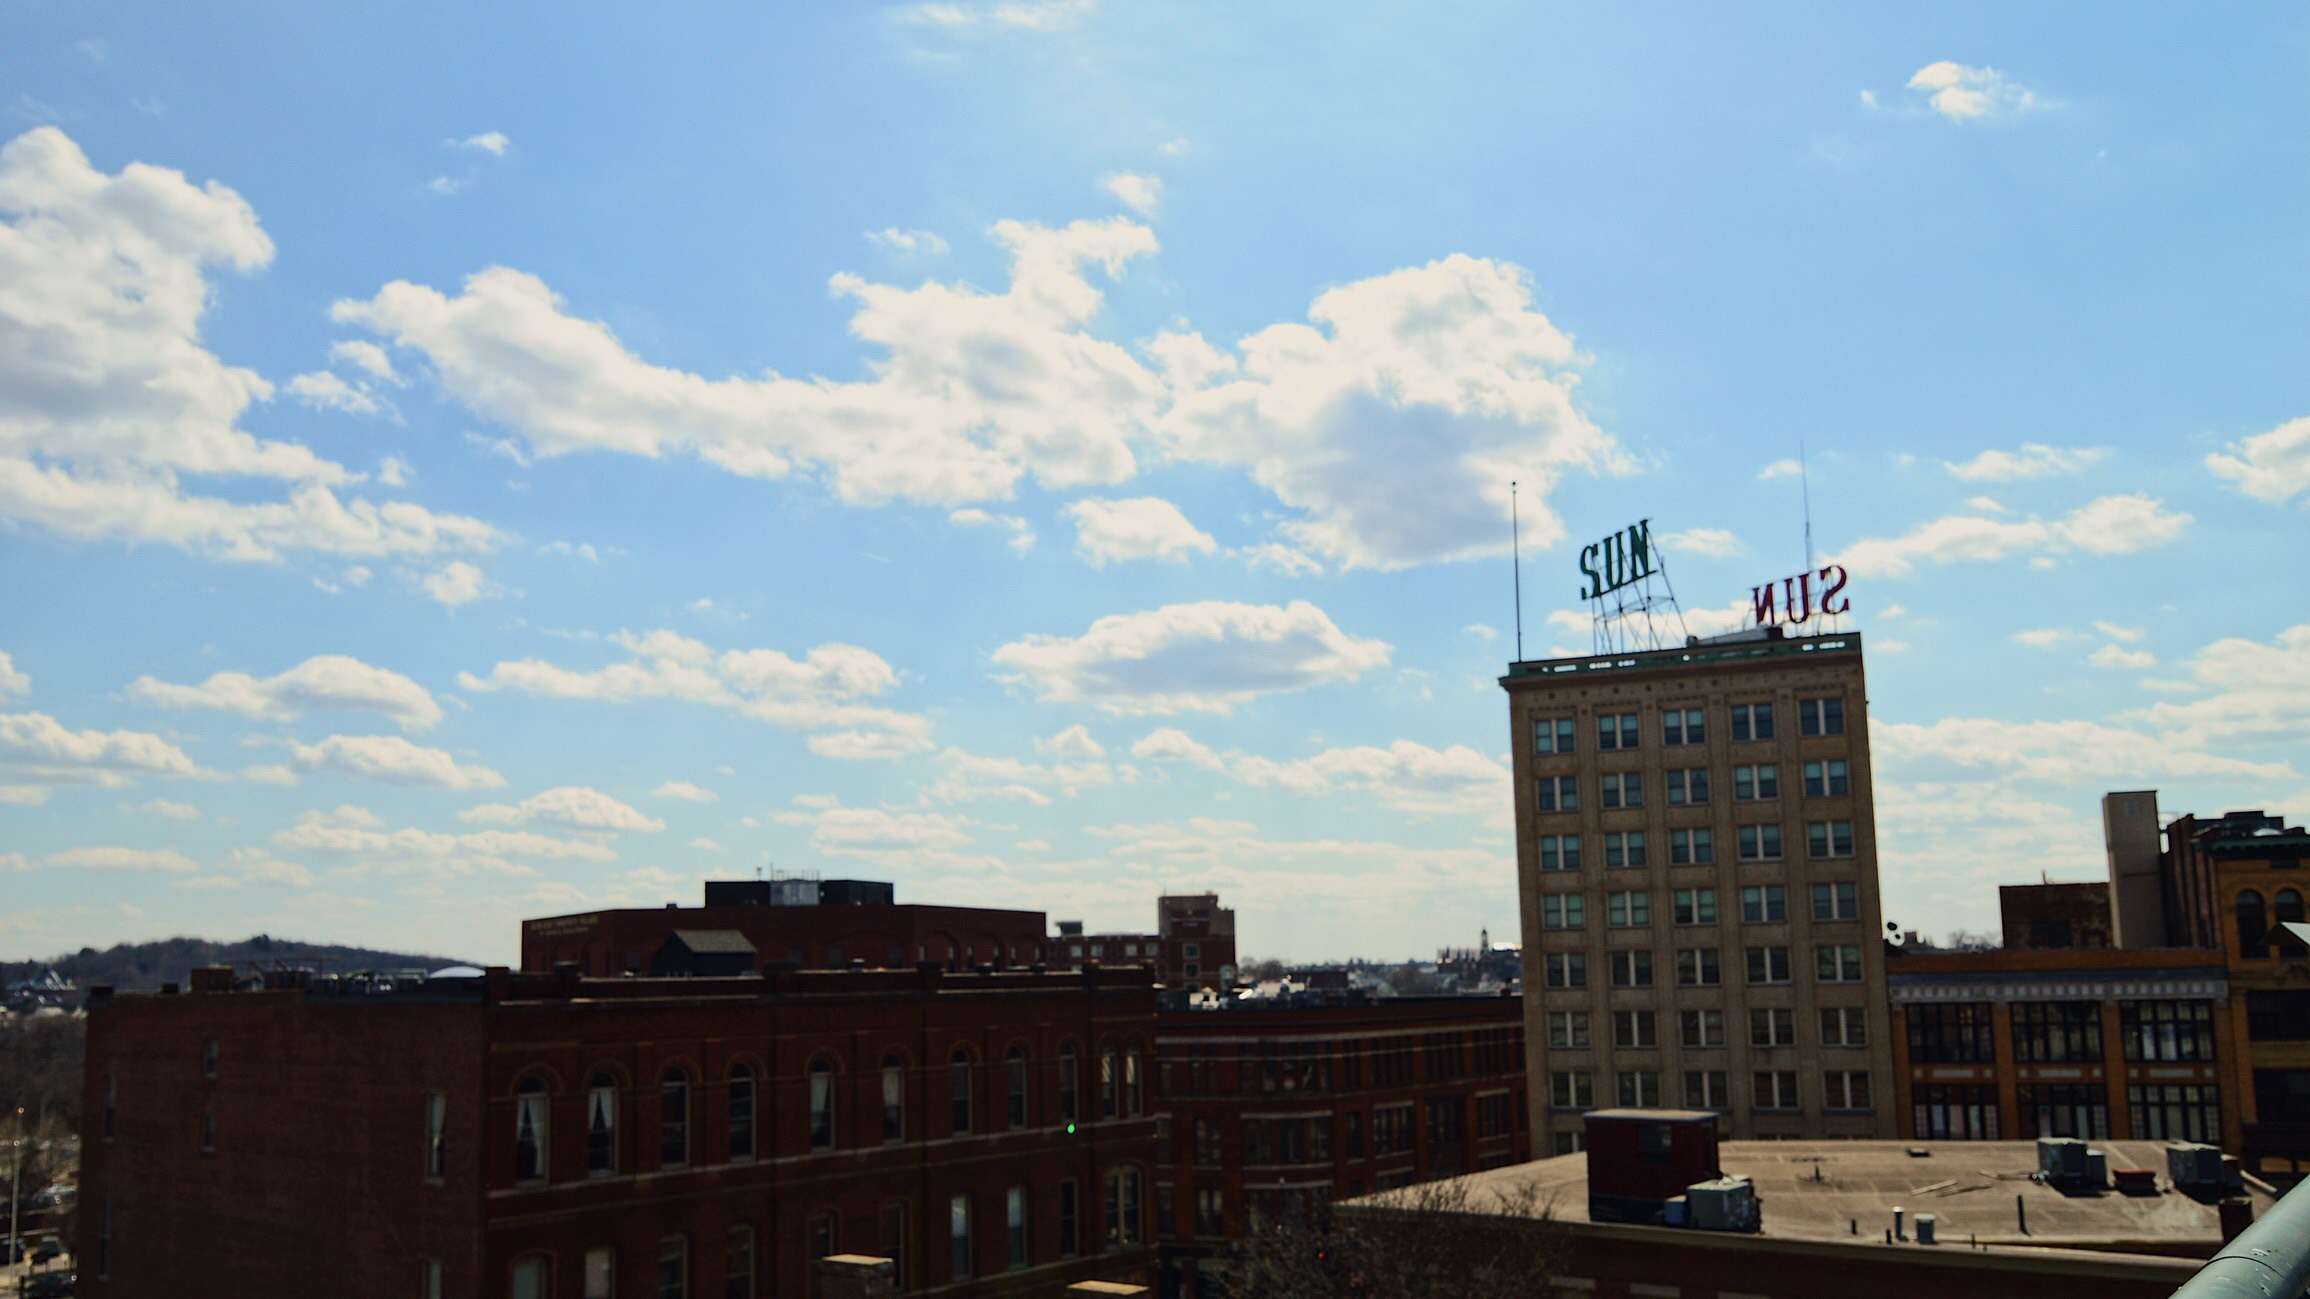 The Lowell Sun building stands tall among the downtown scene in a southeast shot from the Joseph Downes (John Street) garage.